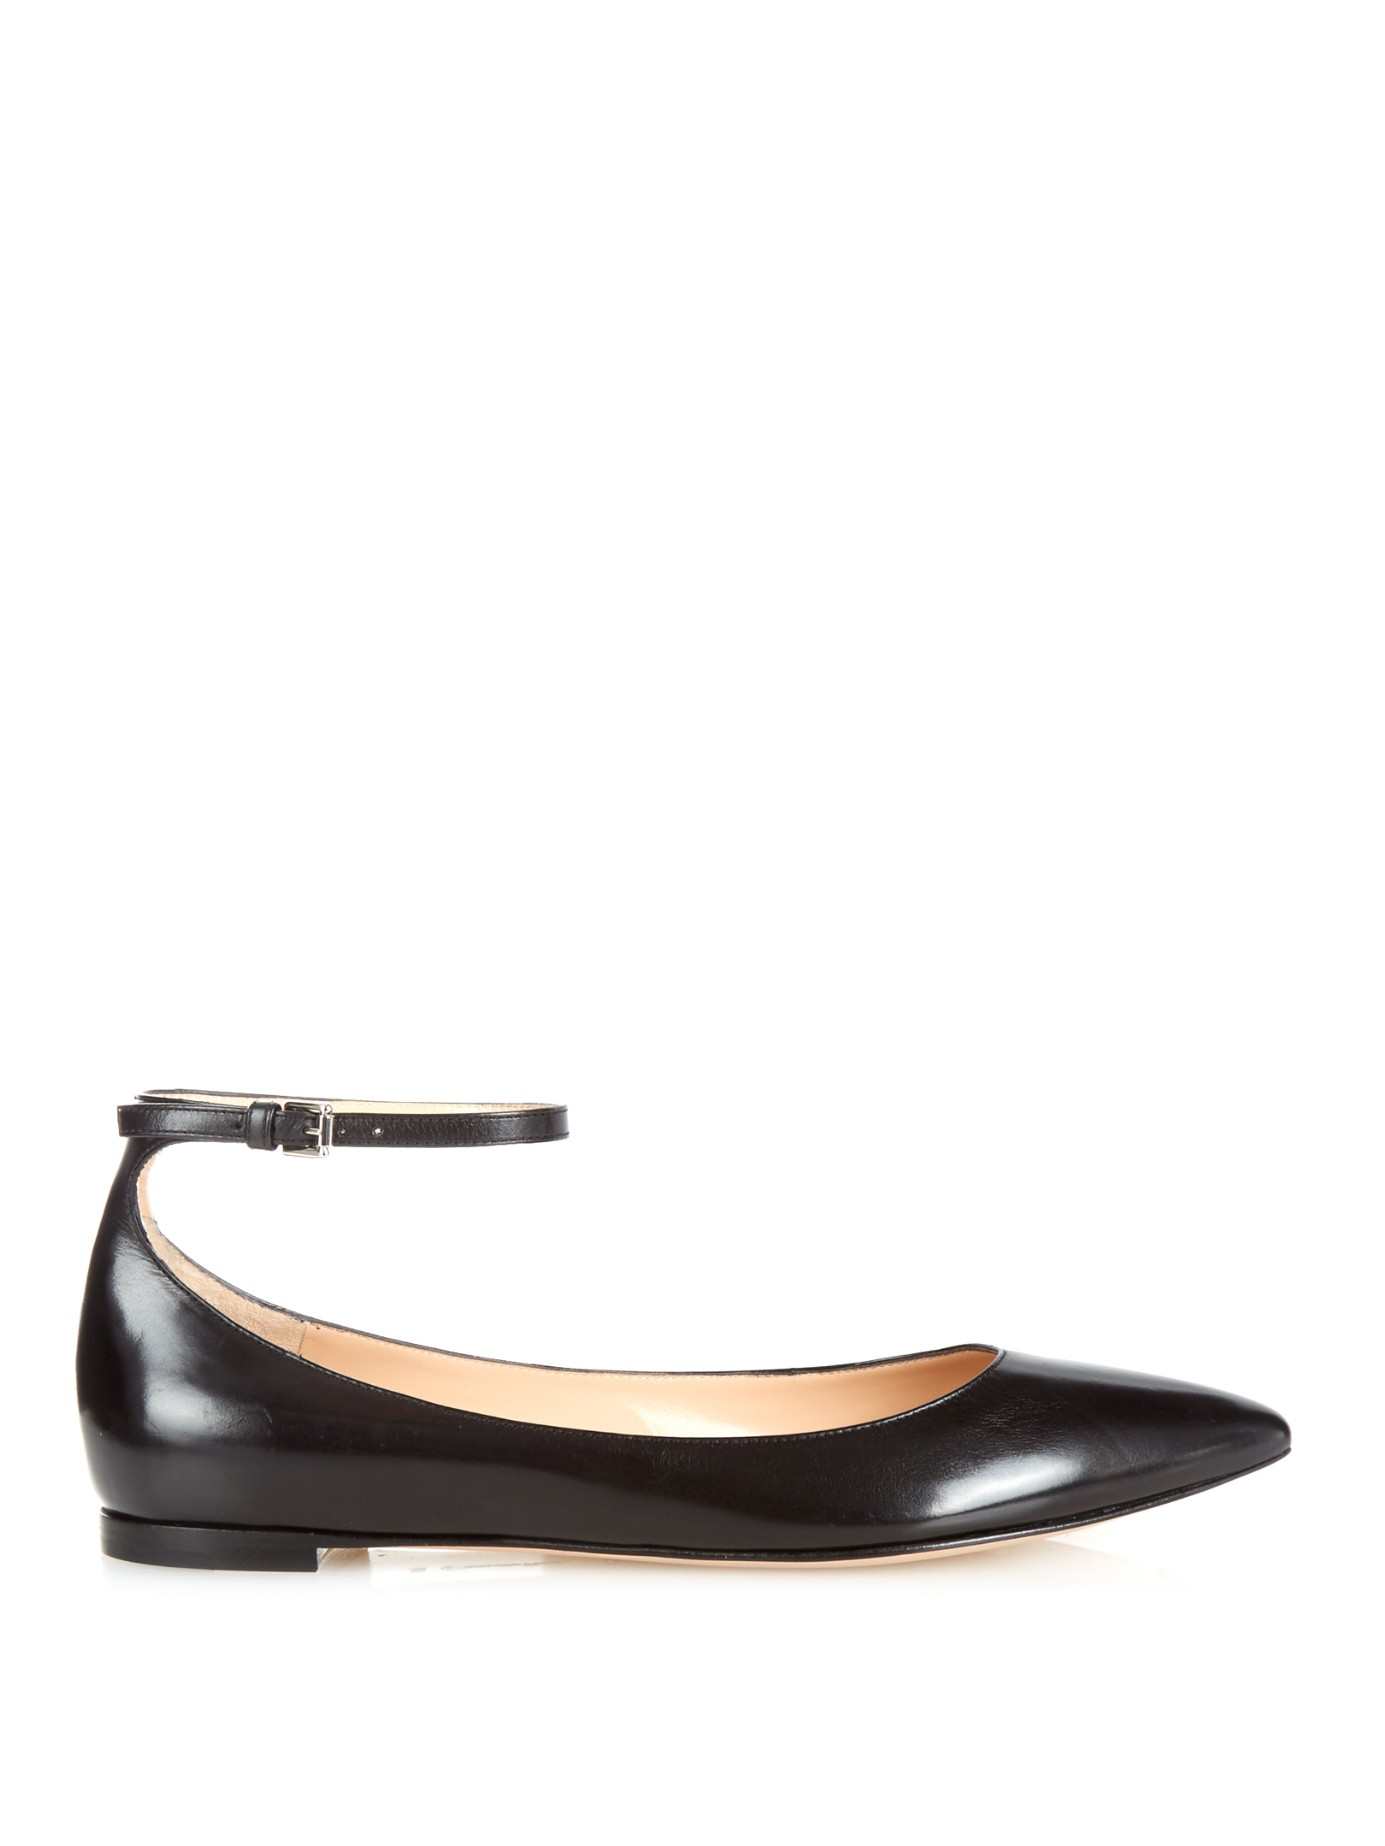 Gianvito Rossi Leather Ballet Flats BE5n76w4